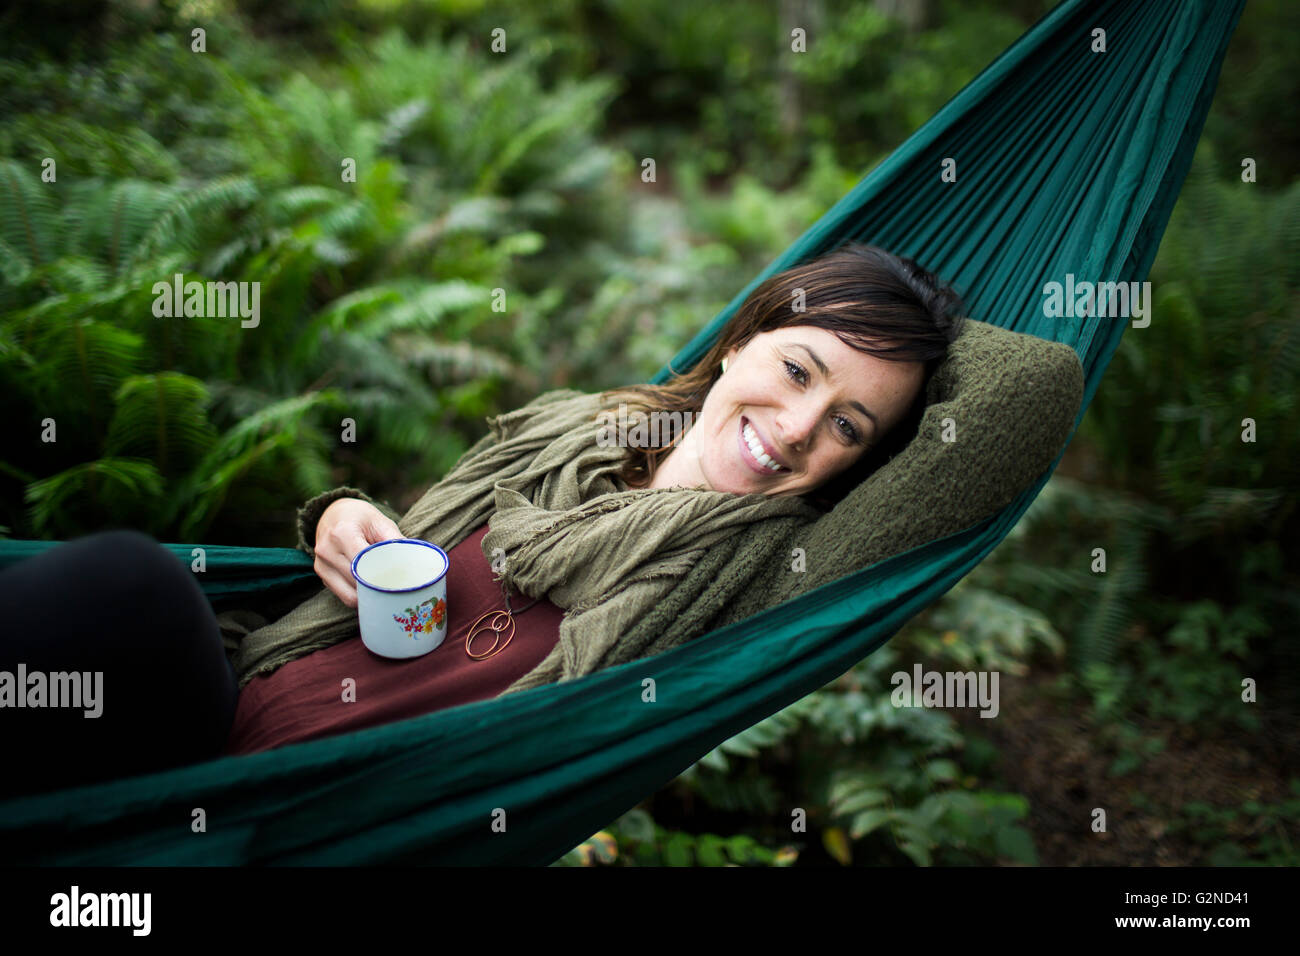 Hanging in a rain forest - Stock Image